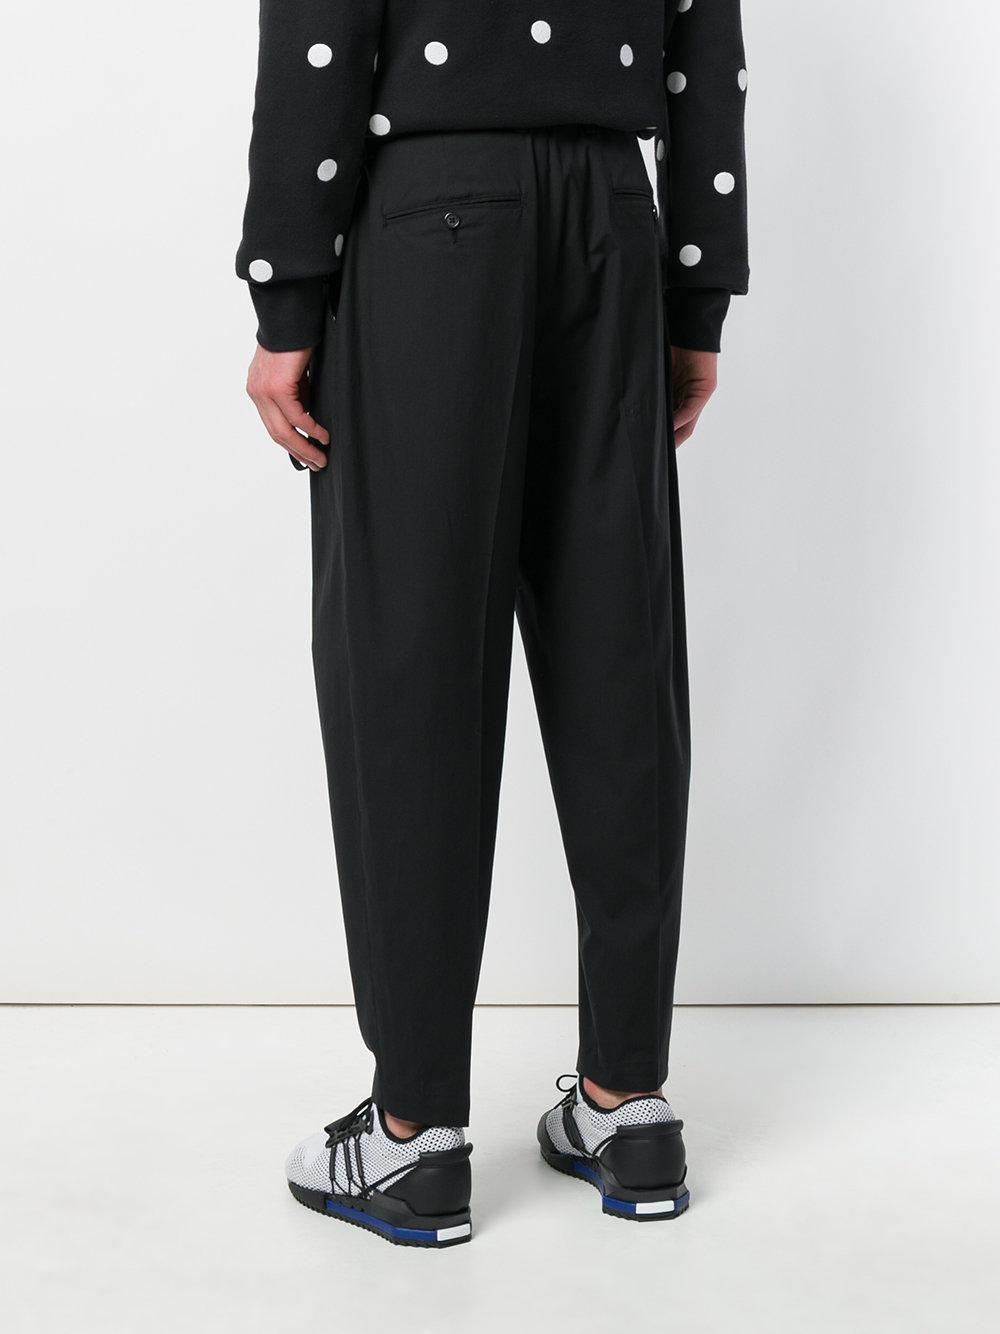 Dolce & Gabbana Cotton Tailored Tapered Trousers in Black for Men